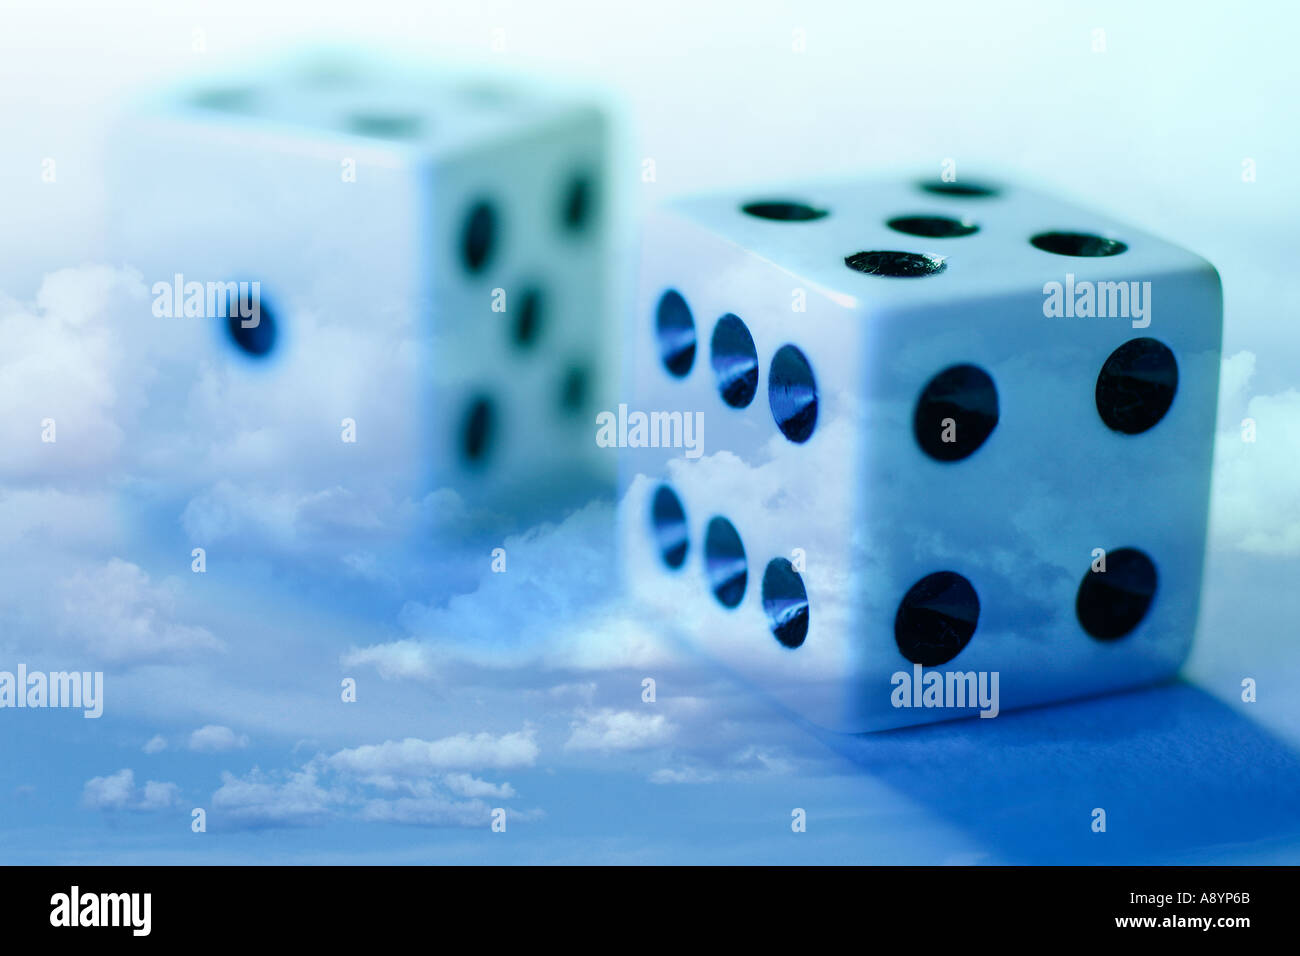 Dice and Clouds - Stock Image